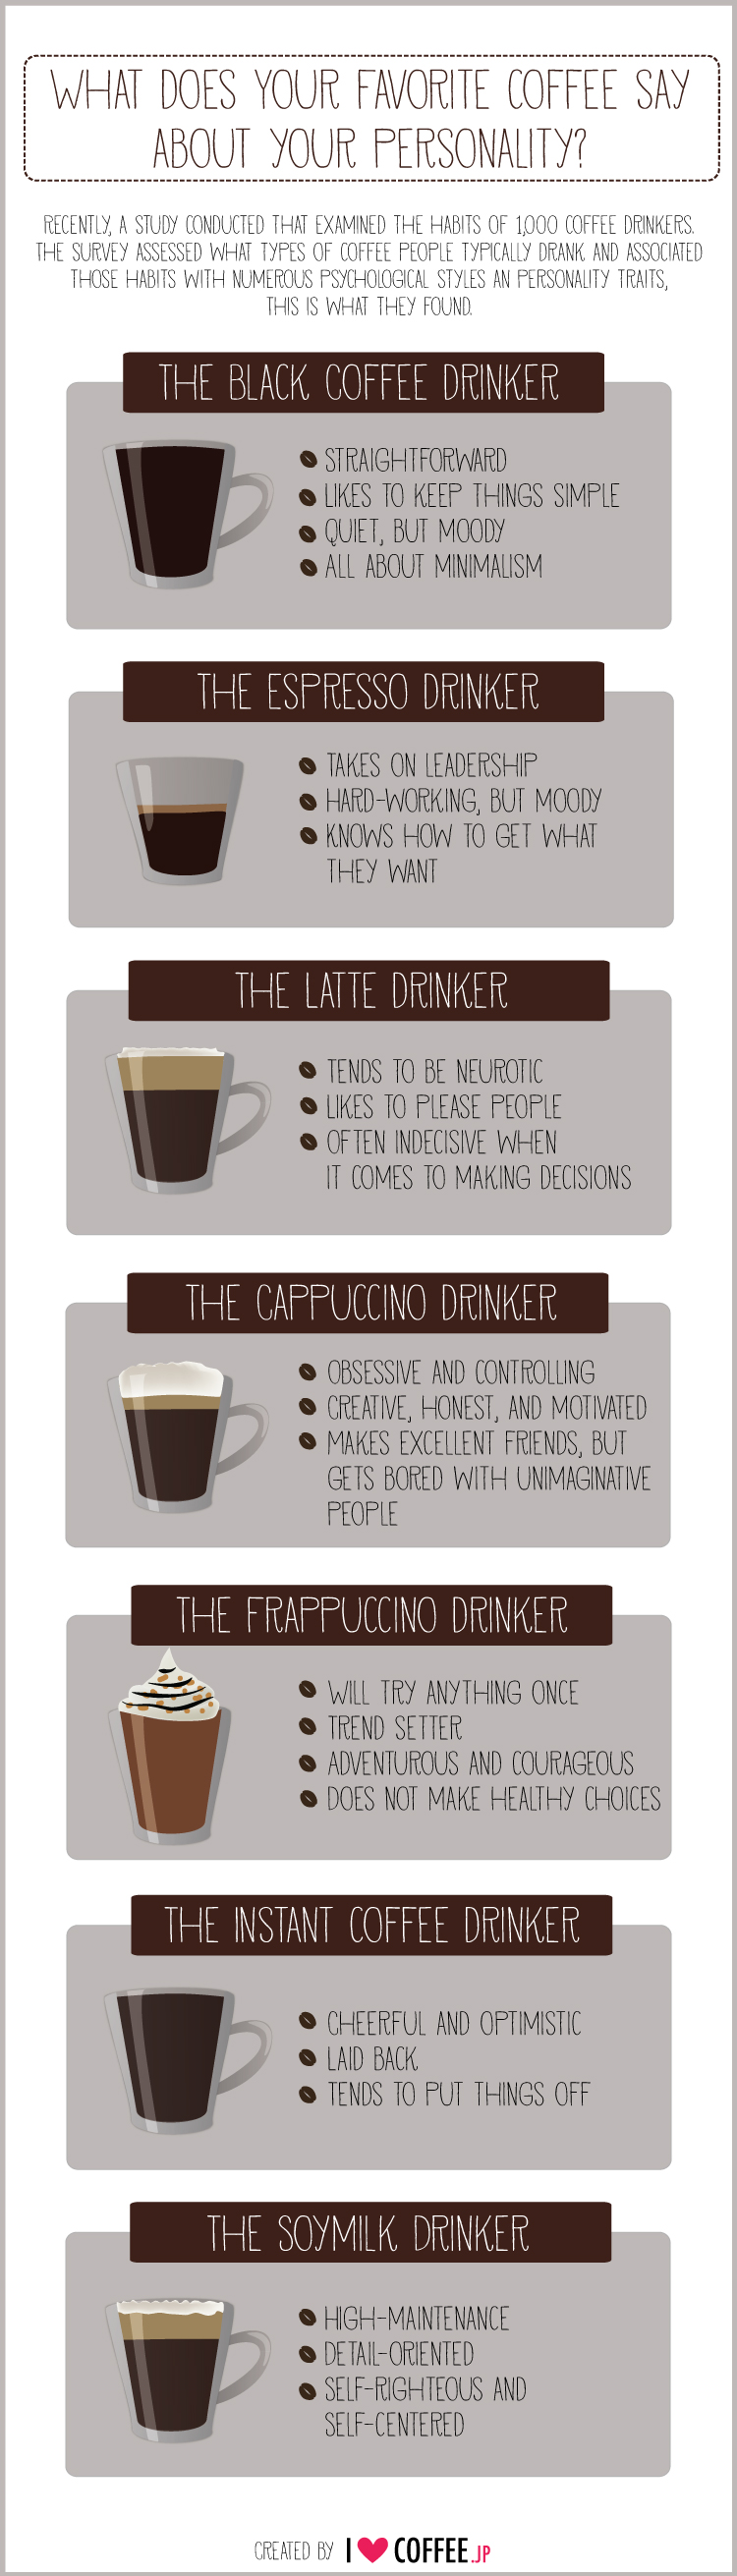 Exploring English - coffee personality test